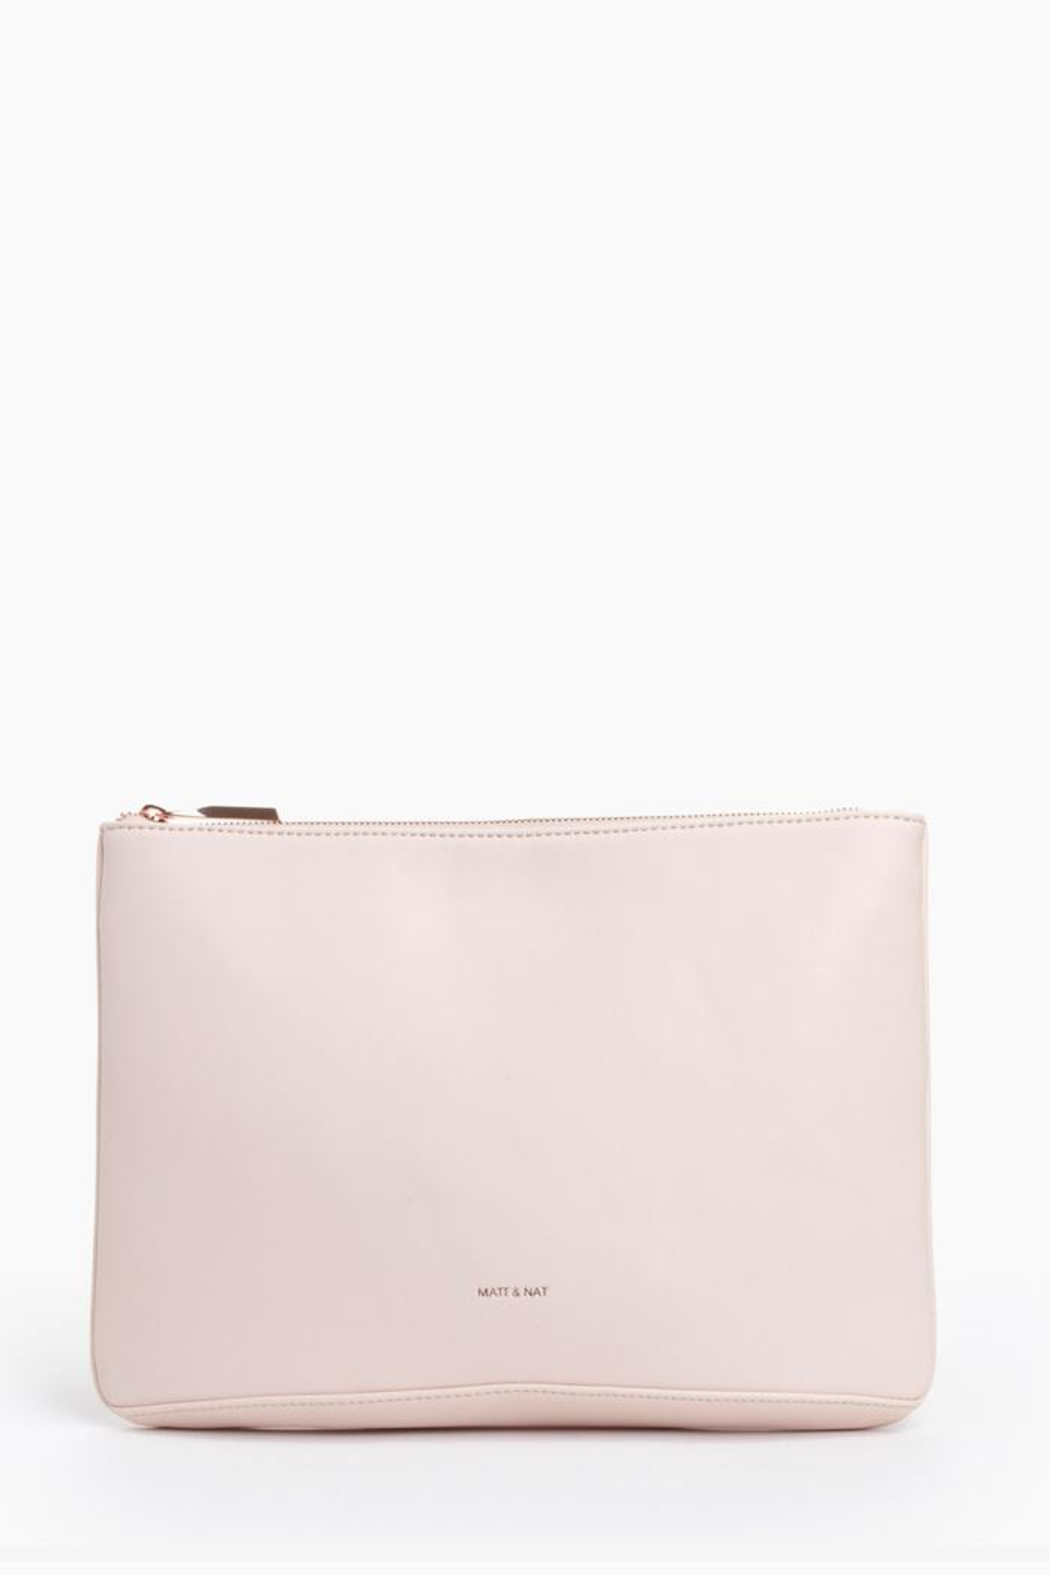 Matt & Nat Dwes Vegan Clutch - Main Image